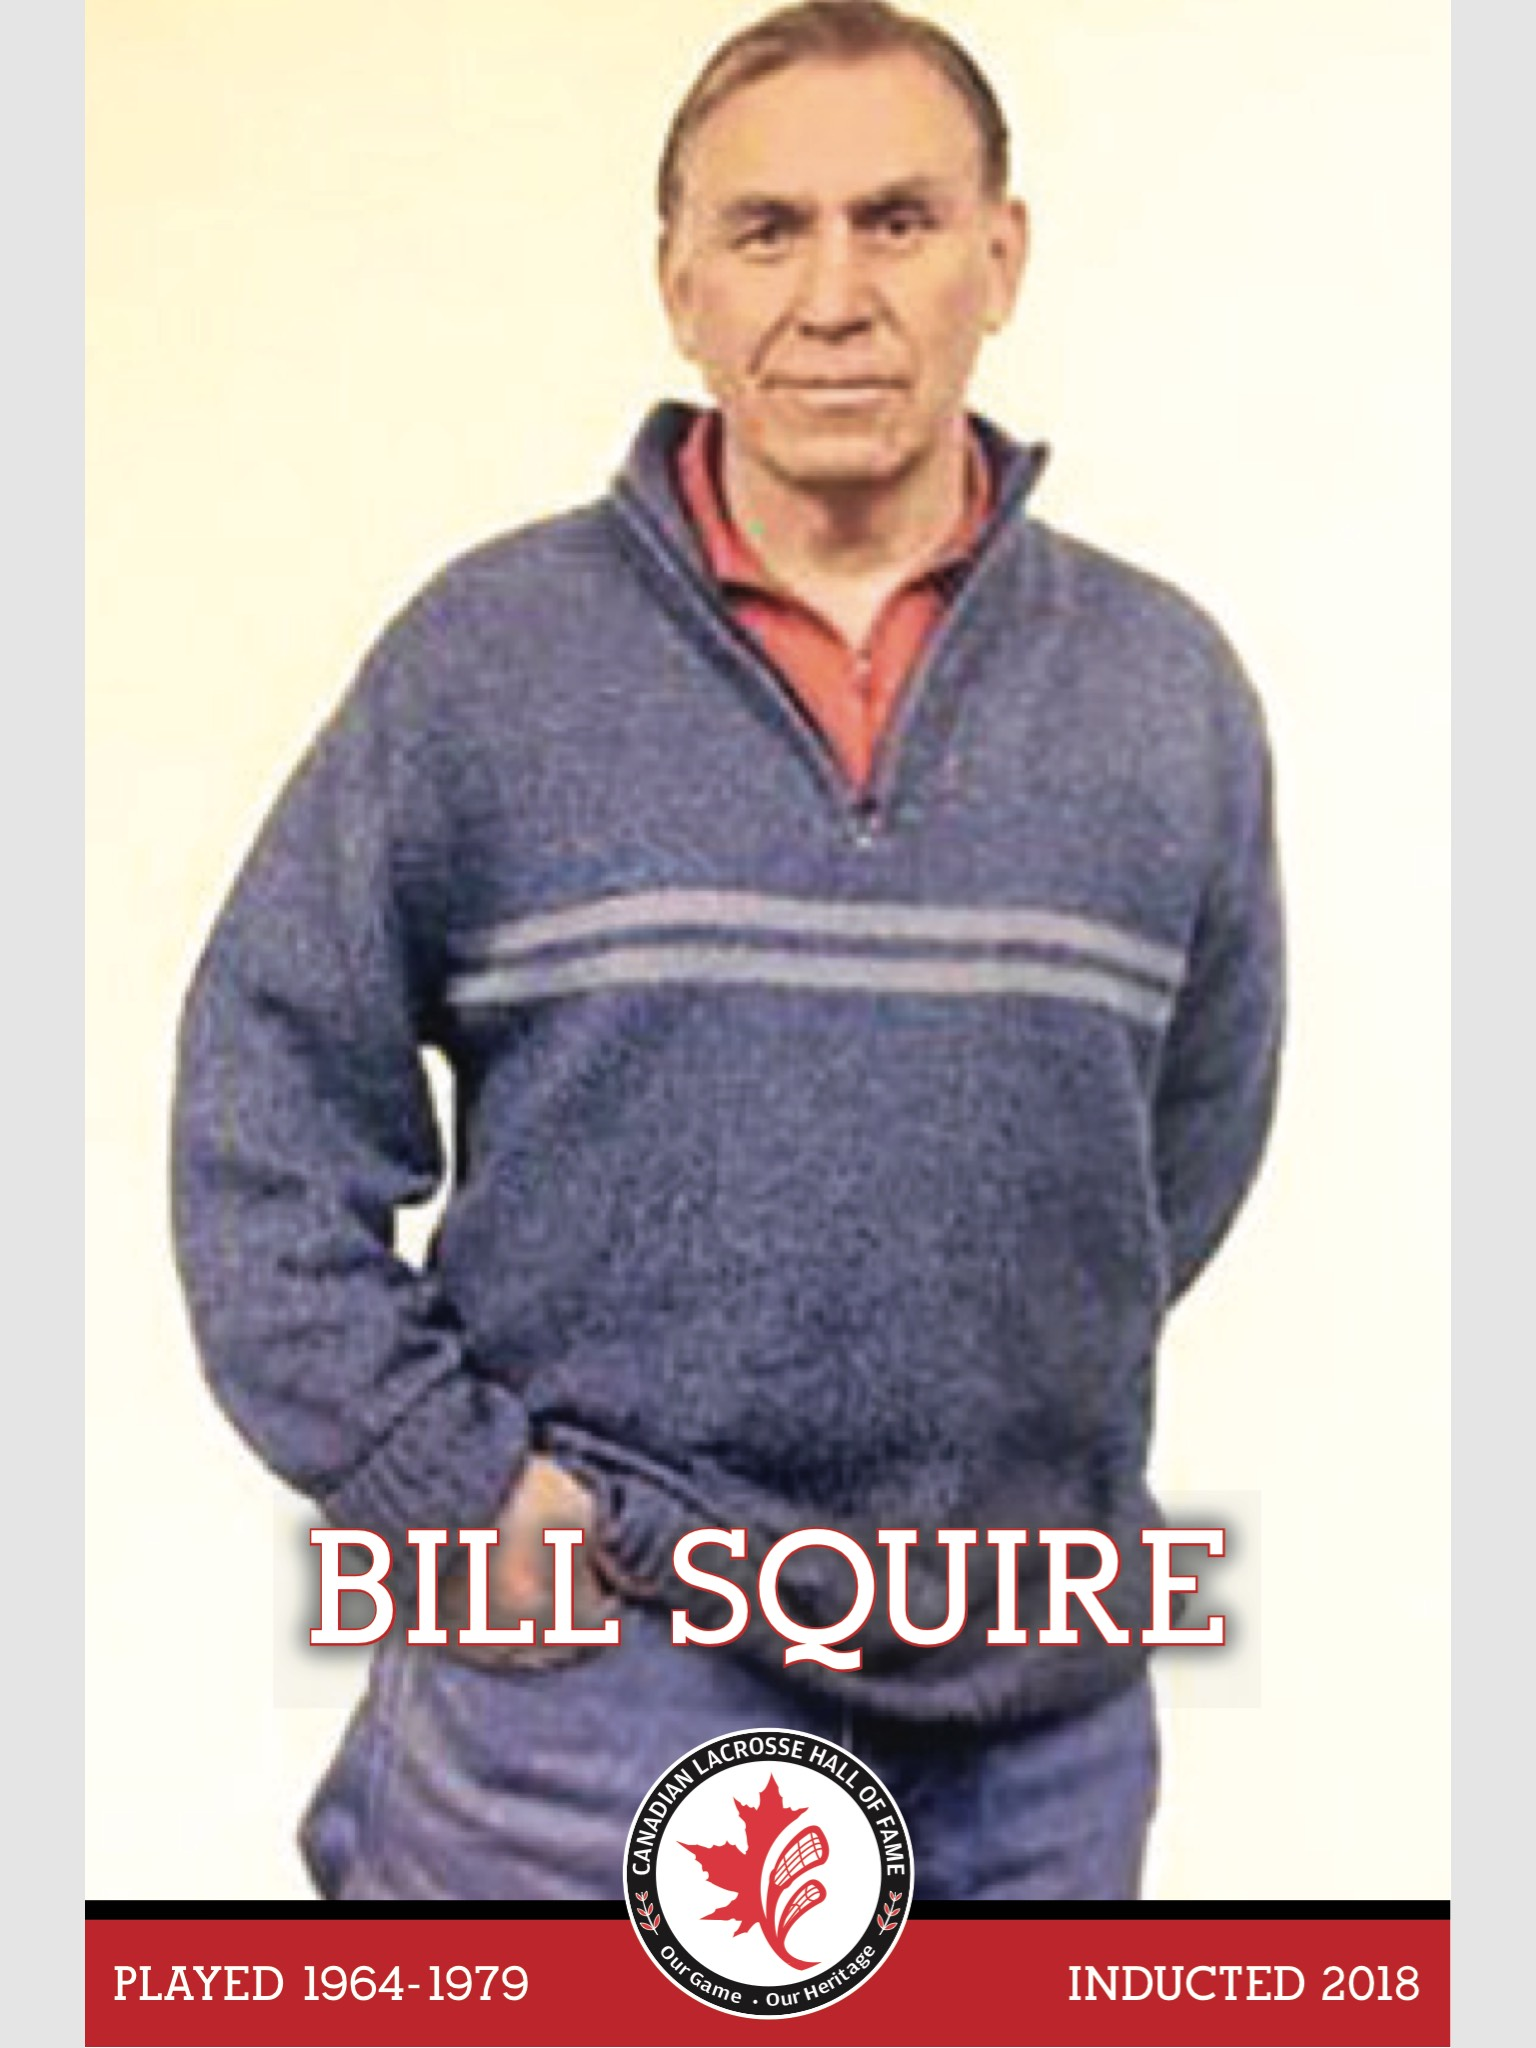 Bill Squire